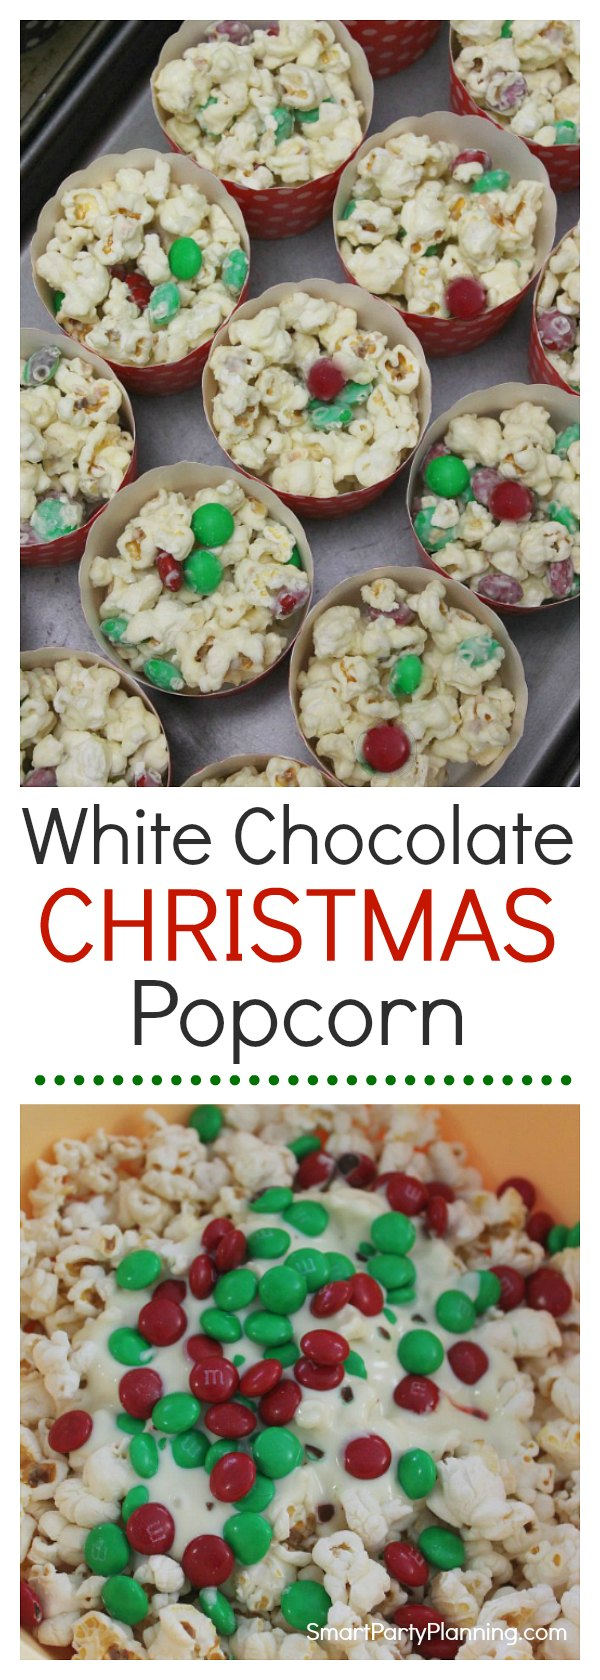 The most amazing white chocolate popcorn recipe that includes M&M's.  This Christmas popcorn is perfect for the holidays with it's red and green M&M's and sweet and salty combination. Need a treat for a different holiday?  Simply switch the M&M chocolate colors to suit any other occasion. It's a super easy treat to make that guests will love to enjoy at parties or movie nights.